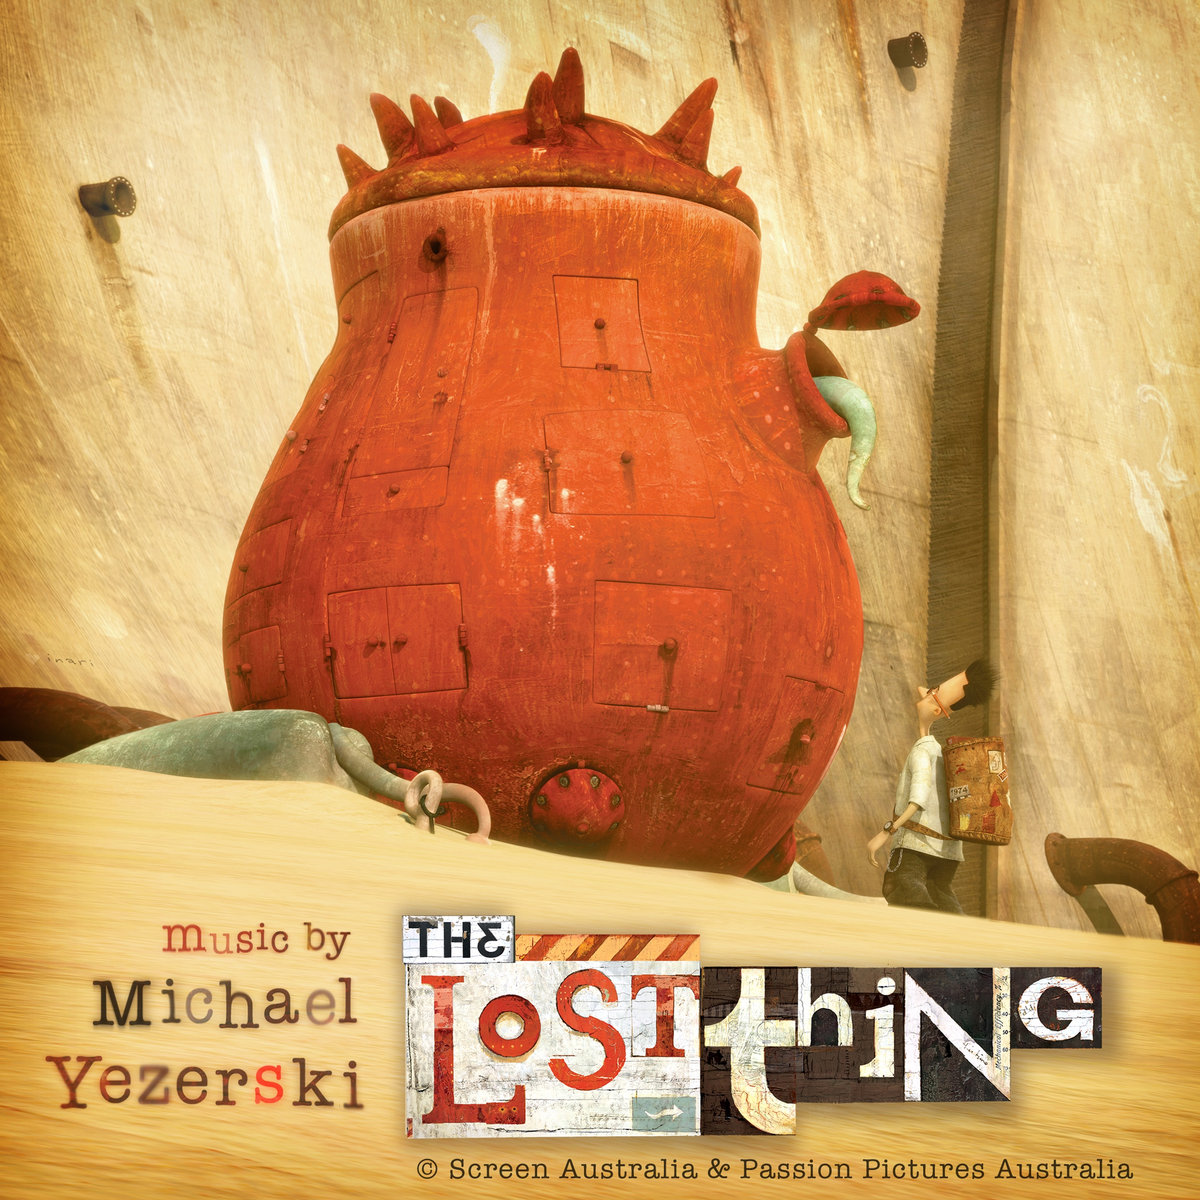 The Lost Thing - Winner, Academy Award for Best Animated Short. Directors, Shaun Tan and Andrew Ruhemann. Producer, Sophie Byrne. Click on the picture for more info.